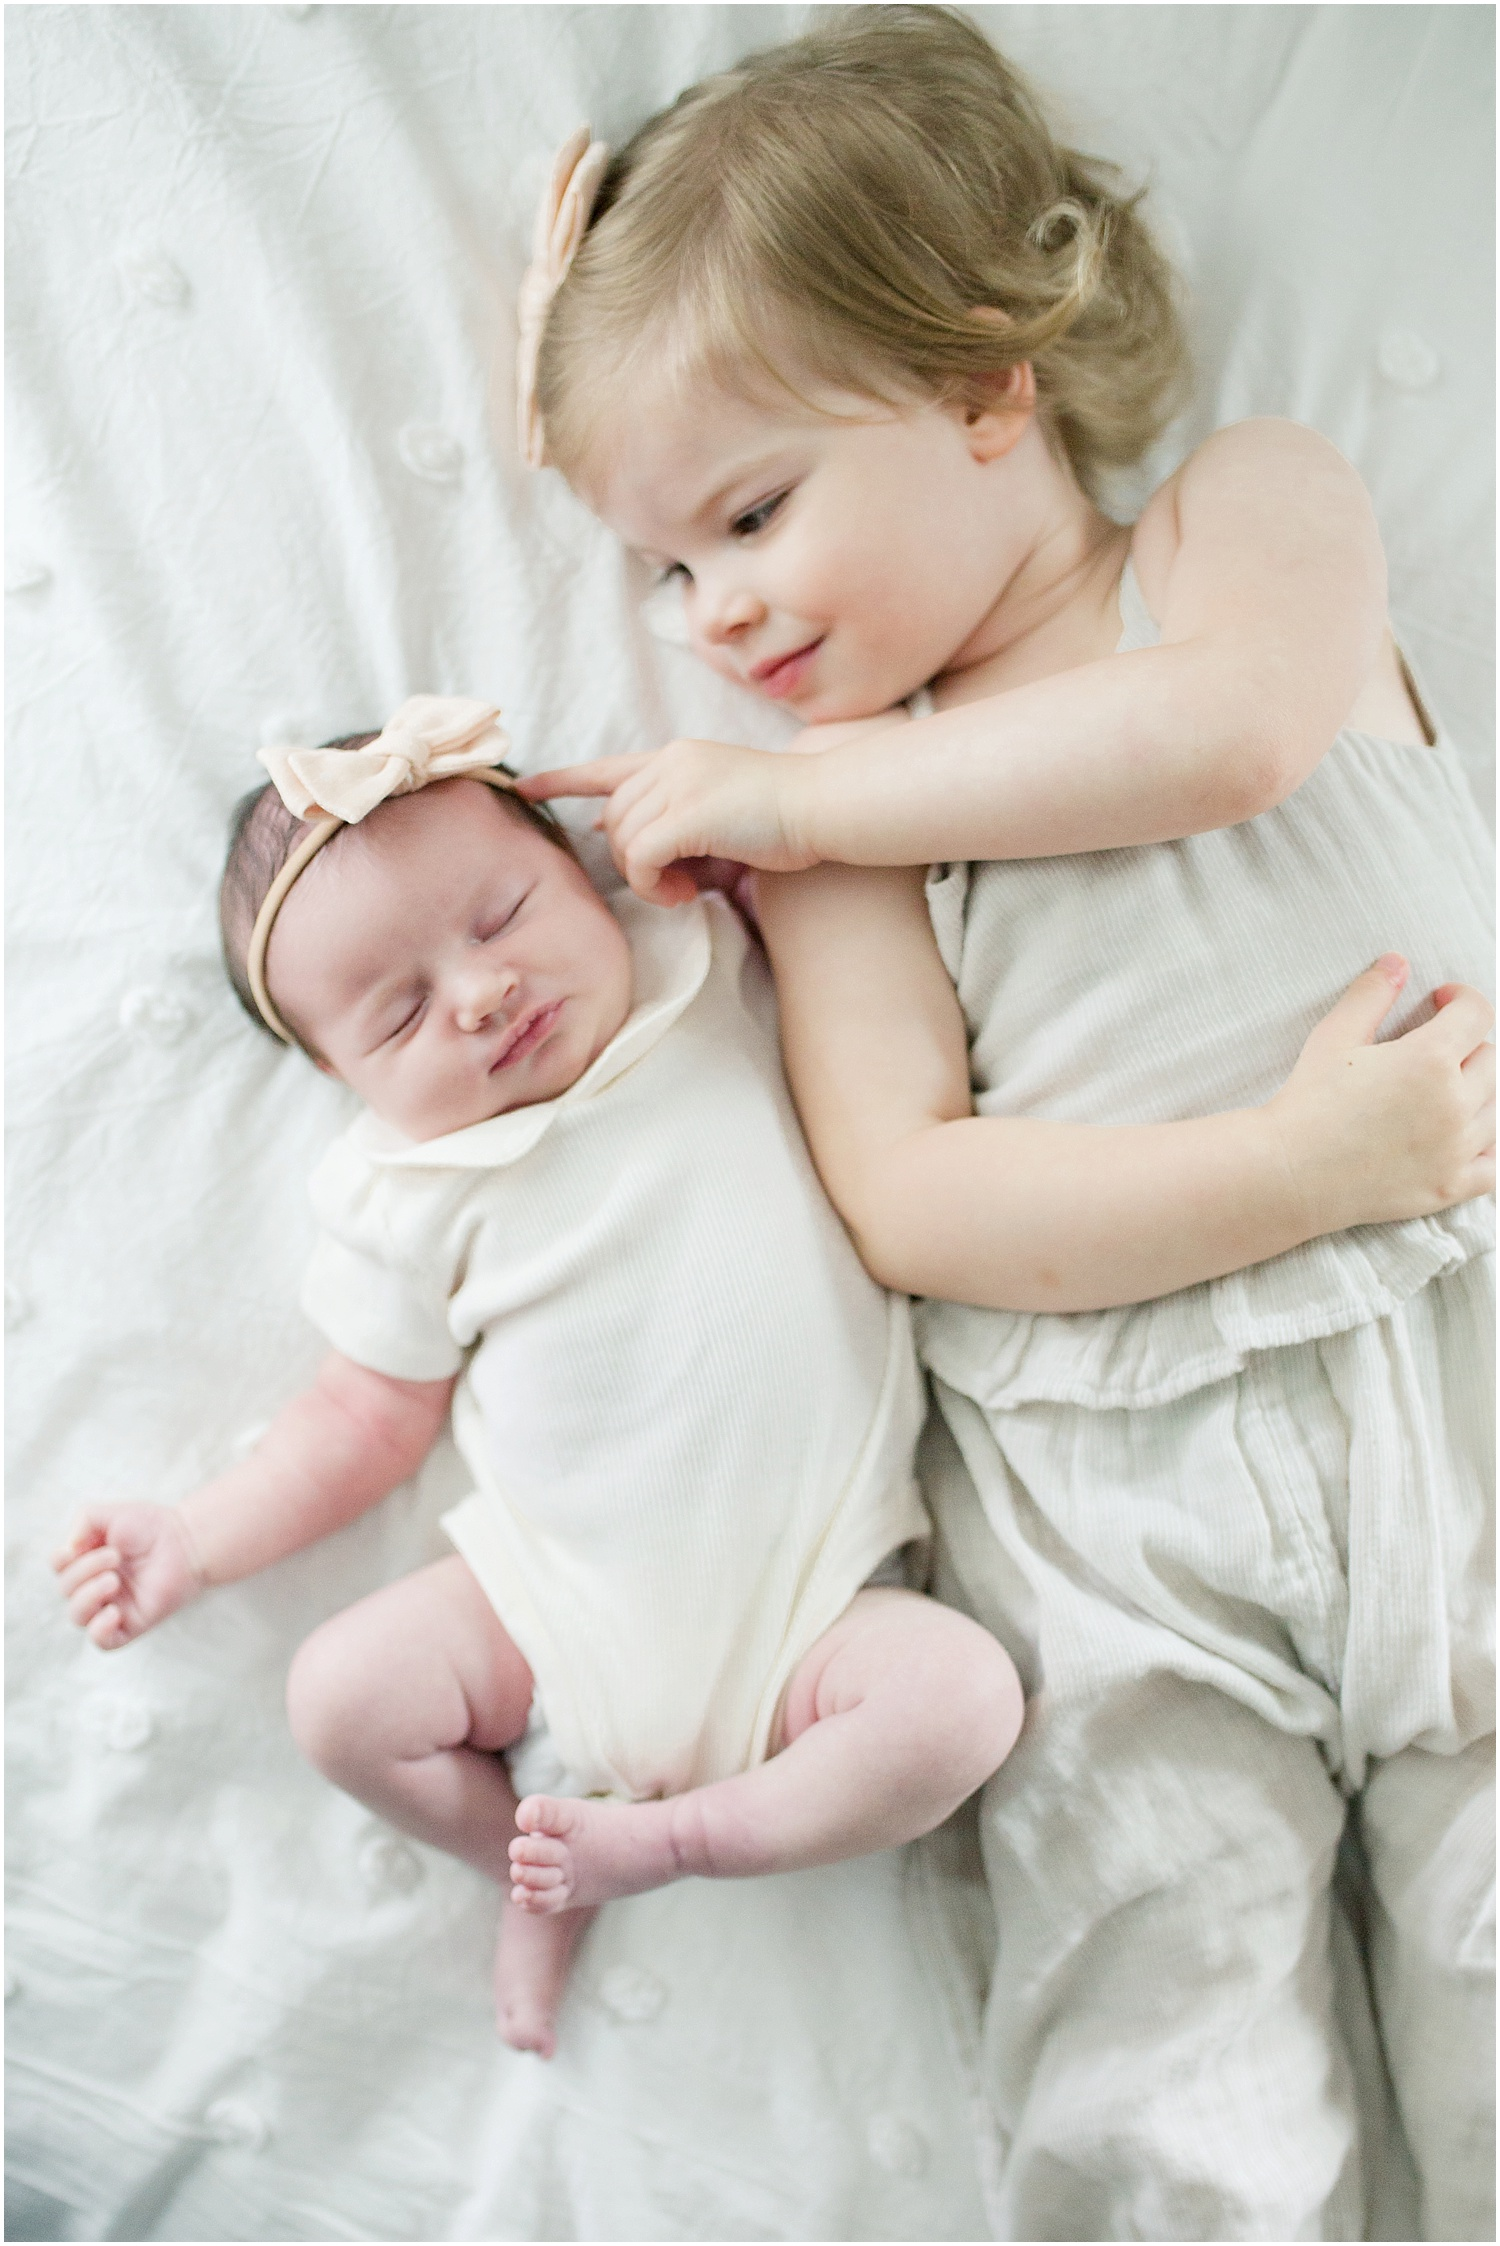 Ashley Powell Photography Quinn Newborn Blog Images_0013.jpg